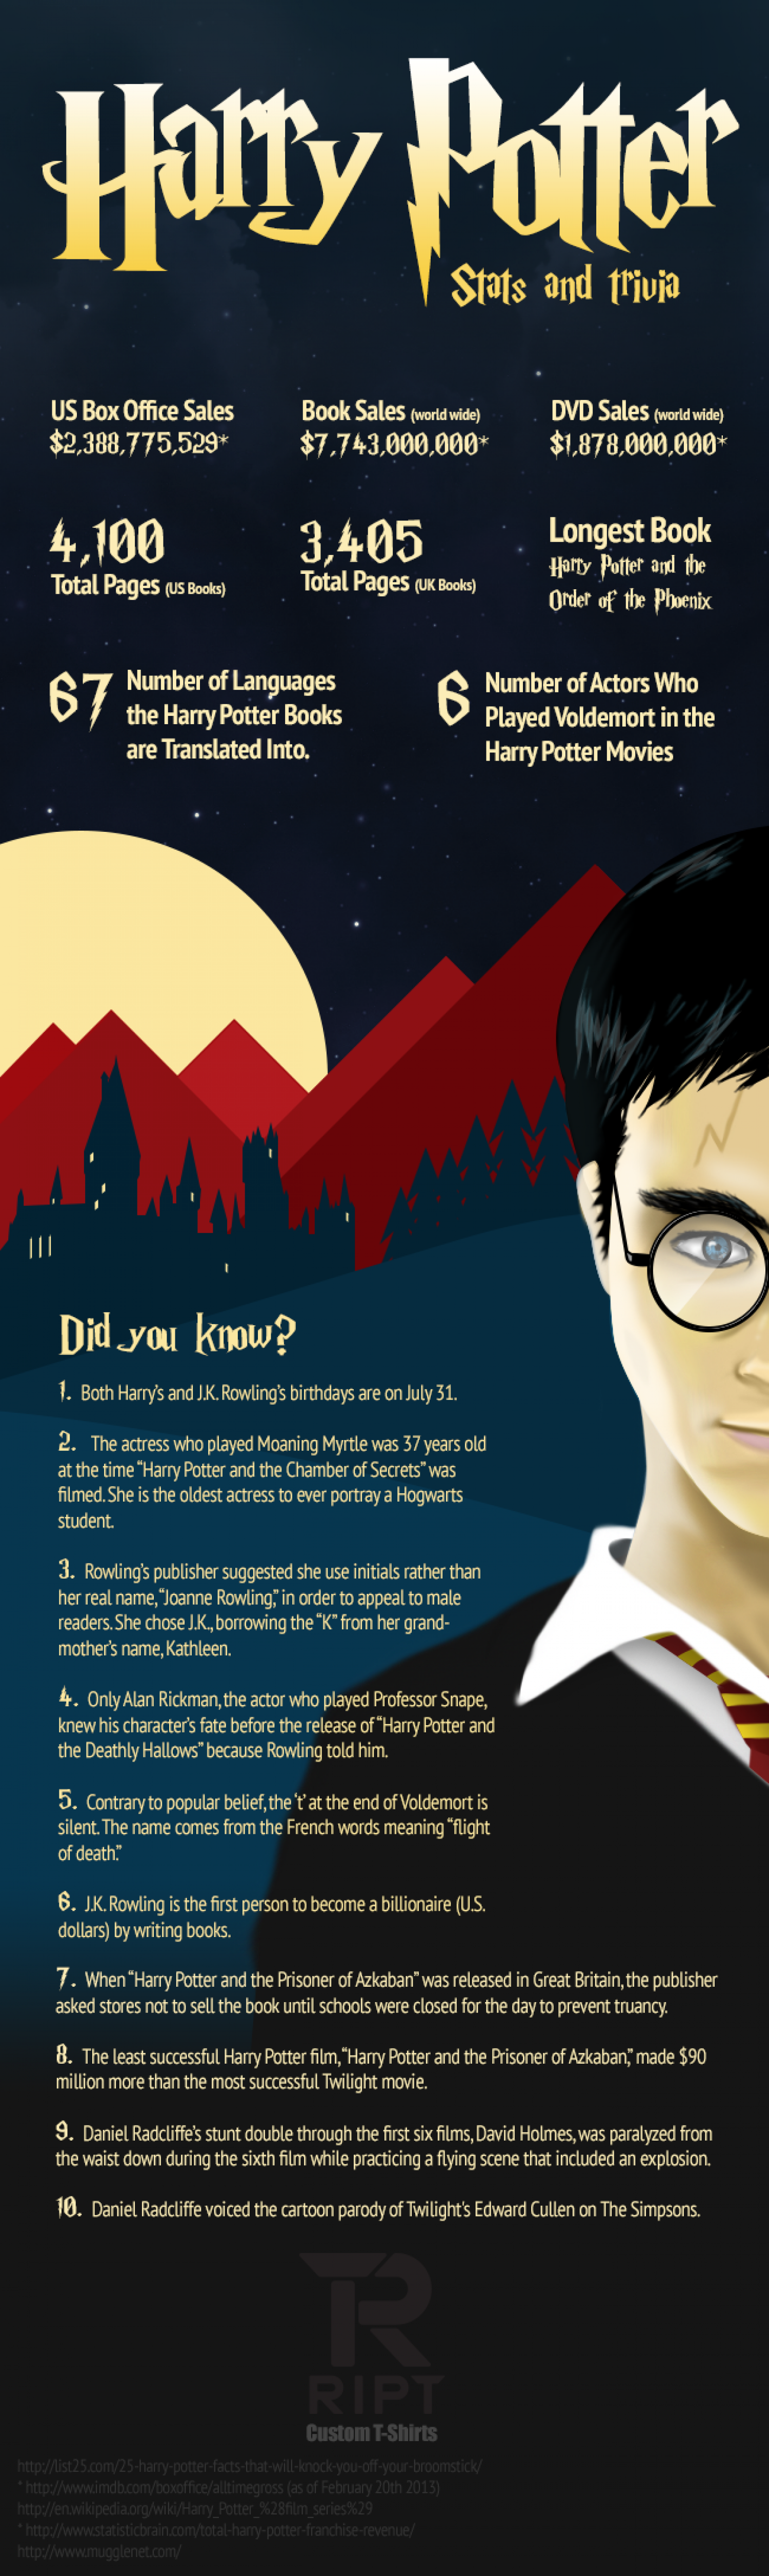 Harry Potter Fanfiction Facts Infographic